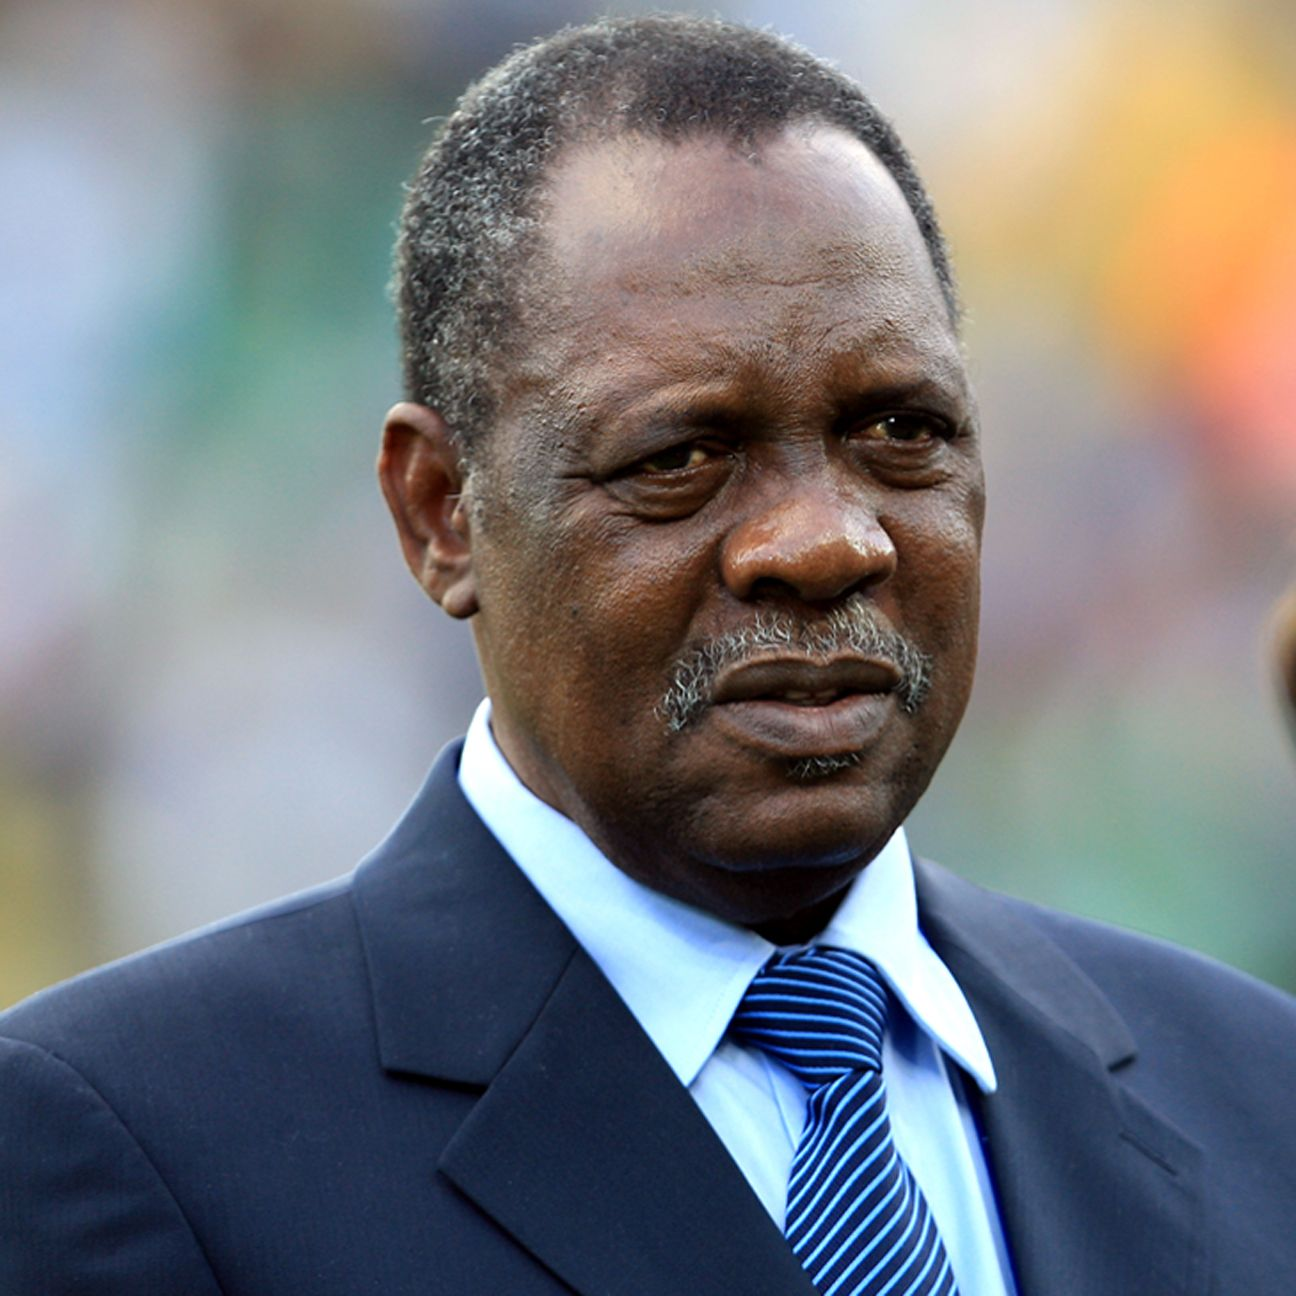 Cameroonian Issa Hayatou has been at the helm of African football for 27 years.